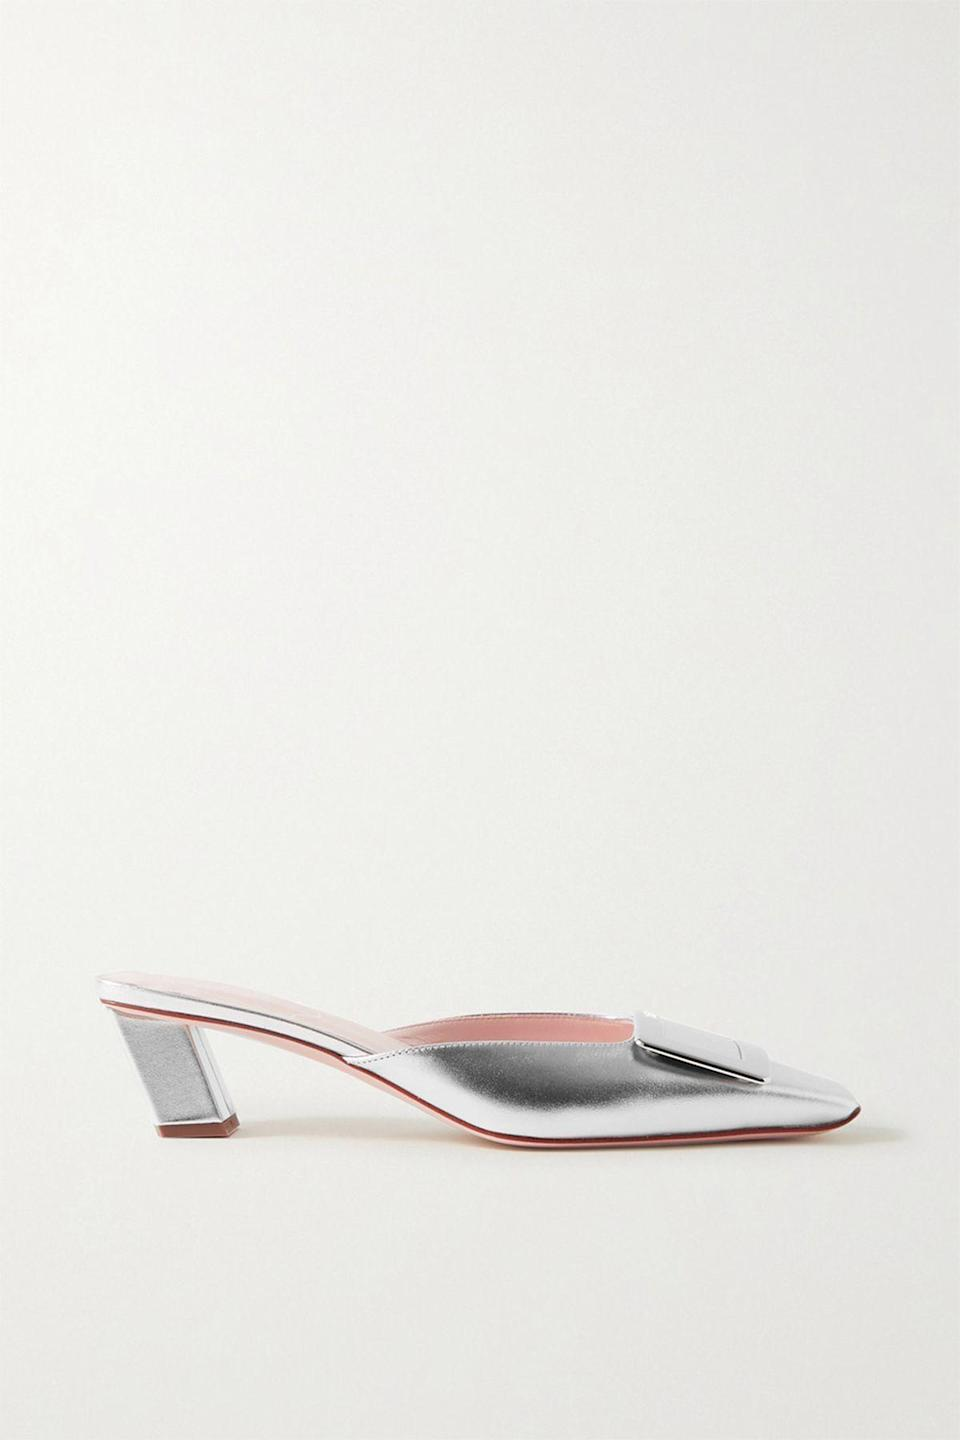 """<p><strong>Roger Vivier</strong></p><p>net-a-porter.com</p><p><strong>$750.00</strong></p><p><a href=""""https://go.redirectingat.com?id=74968X1596630&url=https%3A%2F%2Fwww.net-a-porter.com%2Fen-us%2Fshop%2Fproduct%2Froger-vivier%2Fshoes%2Fmid-heel%2Fbelle-vivier-metallic-leather-mules%2F24092600056996354&sref=https%3A%2F%2Fwww.townandcountrymag.com%2Fstyle%2Ffashion-trends%2Fg36544376%2Fbest-metallic-accessories%2F"""" rel=""""nofollow noopener"""" target=""""_blank"""" data-ylk=""""slk:Shop Now"""" class=""""link rapid-noclick-resp"""">Shop Now</a></p><p>Roger Vivier pumps are a French classic (Catherine Deneuve wore a pair in the 1967 film <em>Belle de Jour</em>). These mules feature the same square toe and buckle, but with a sleeker look and silvery finish. </p>"""